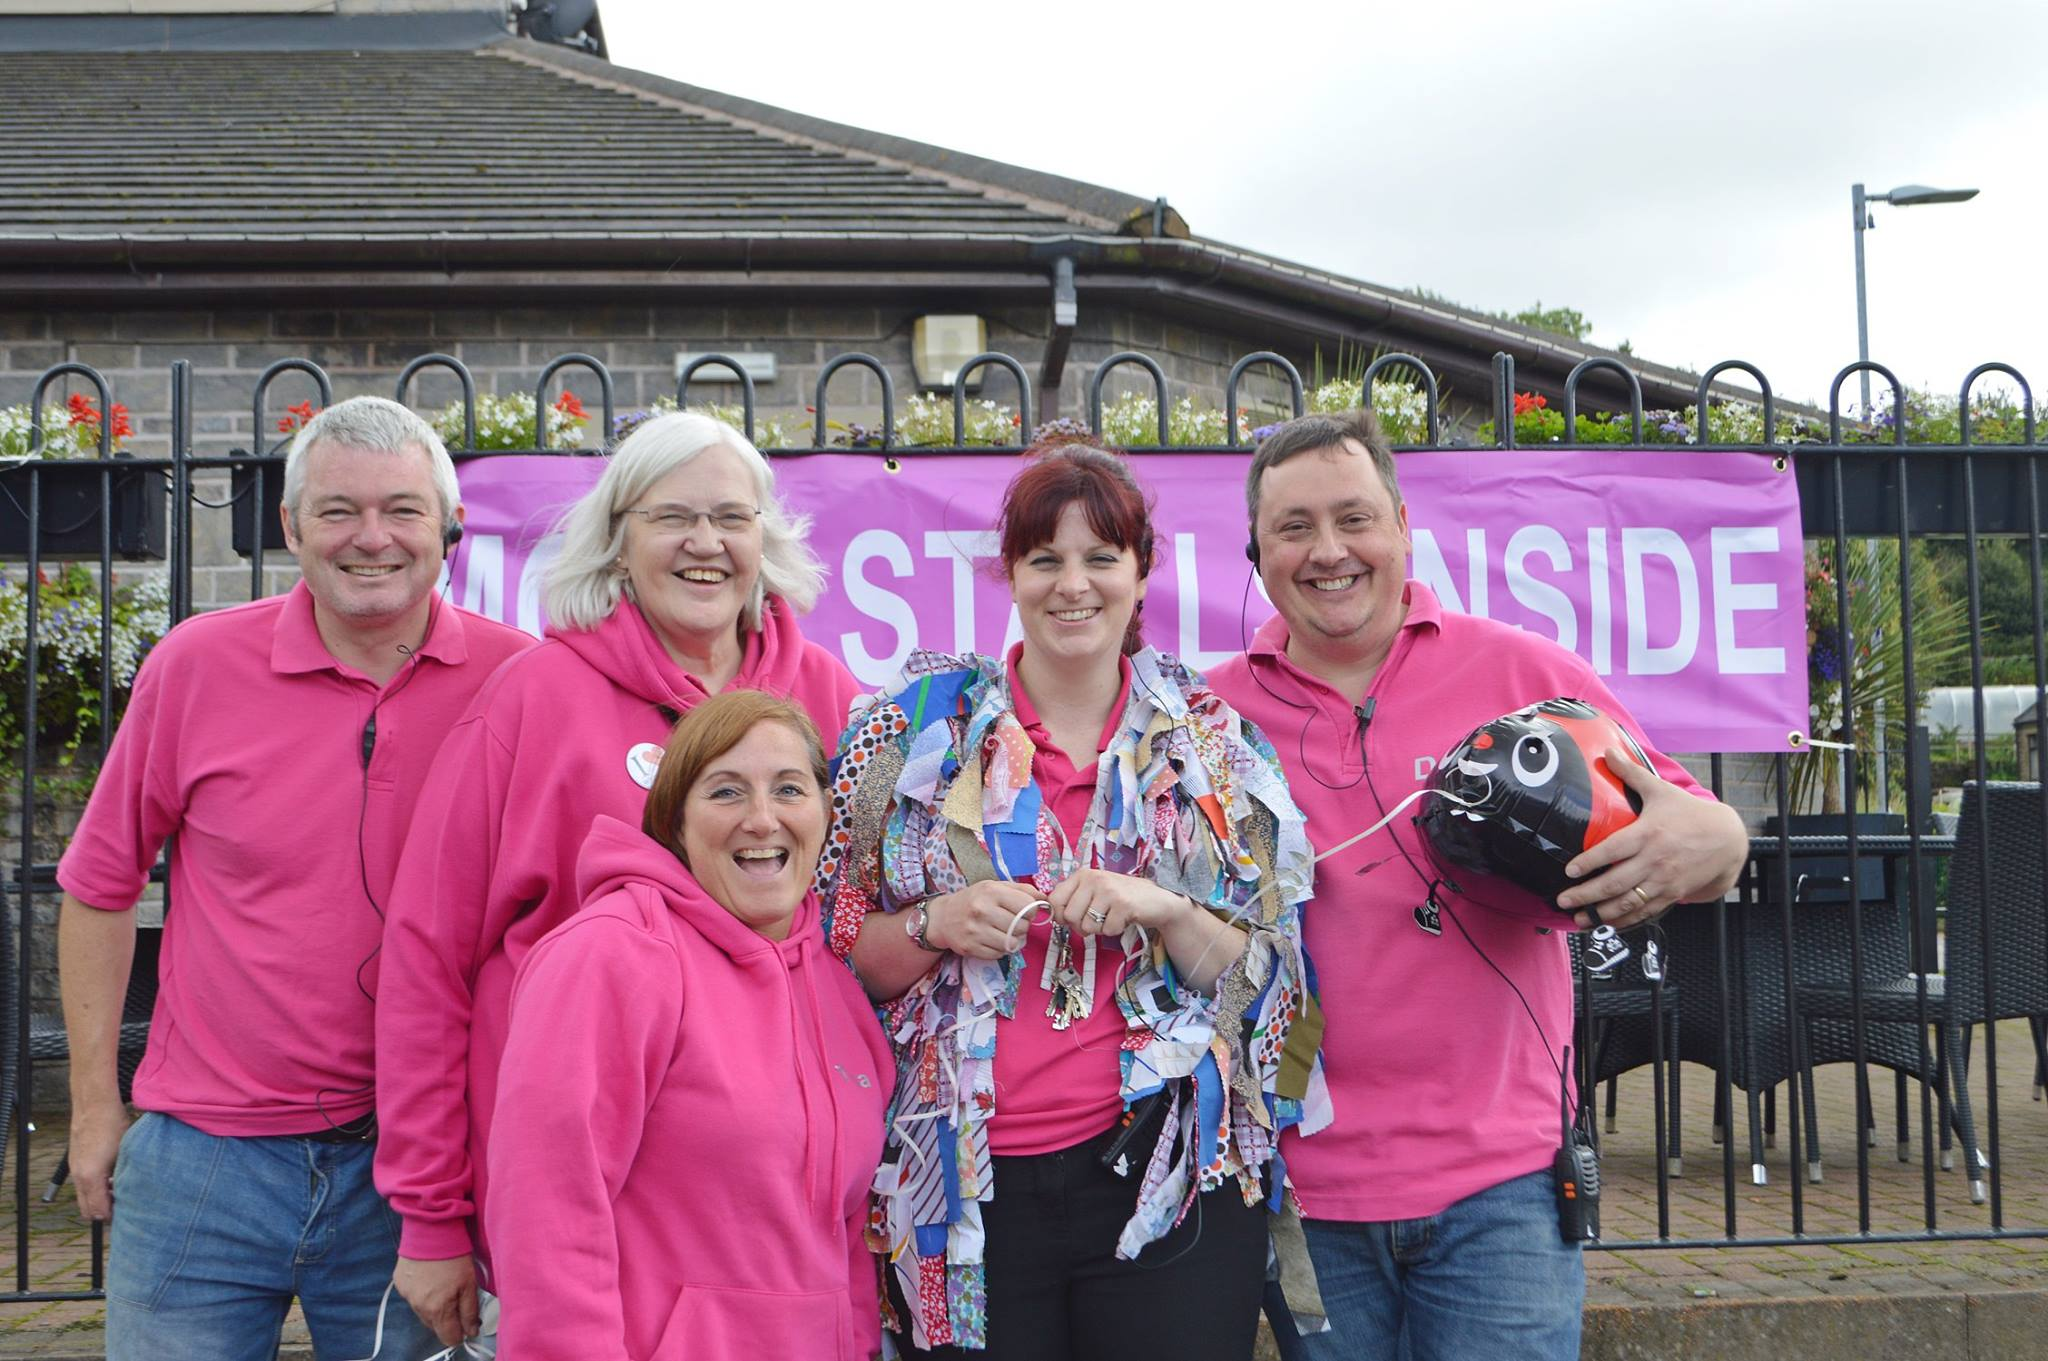 A photo of some of the Tourism and Leisure Committee enjoying volunteering at the Rushcart in their hot pink uniforms!